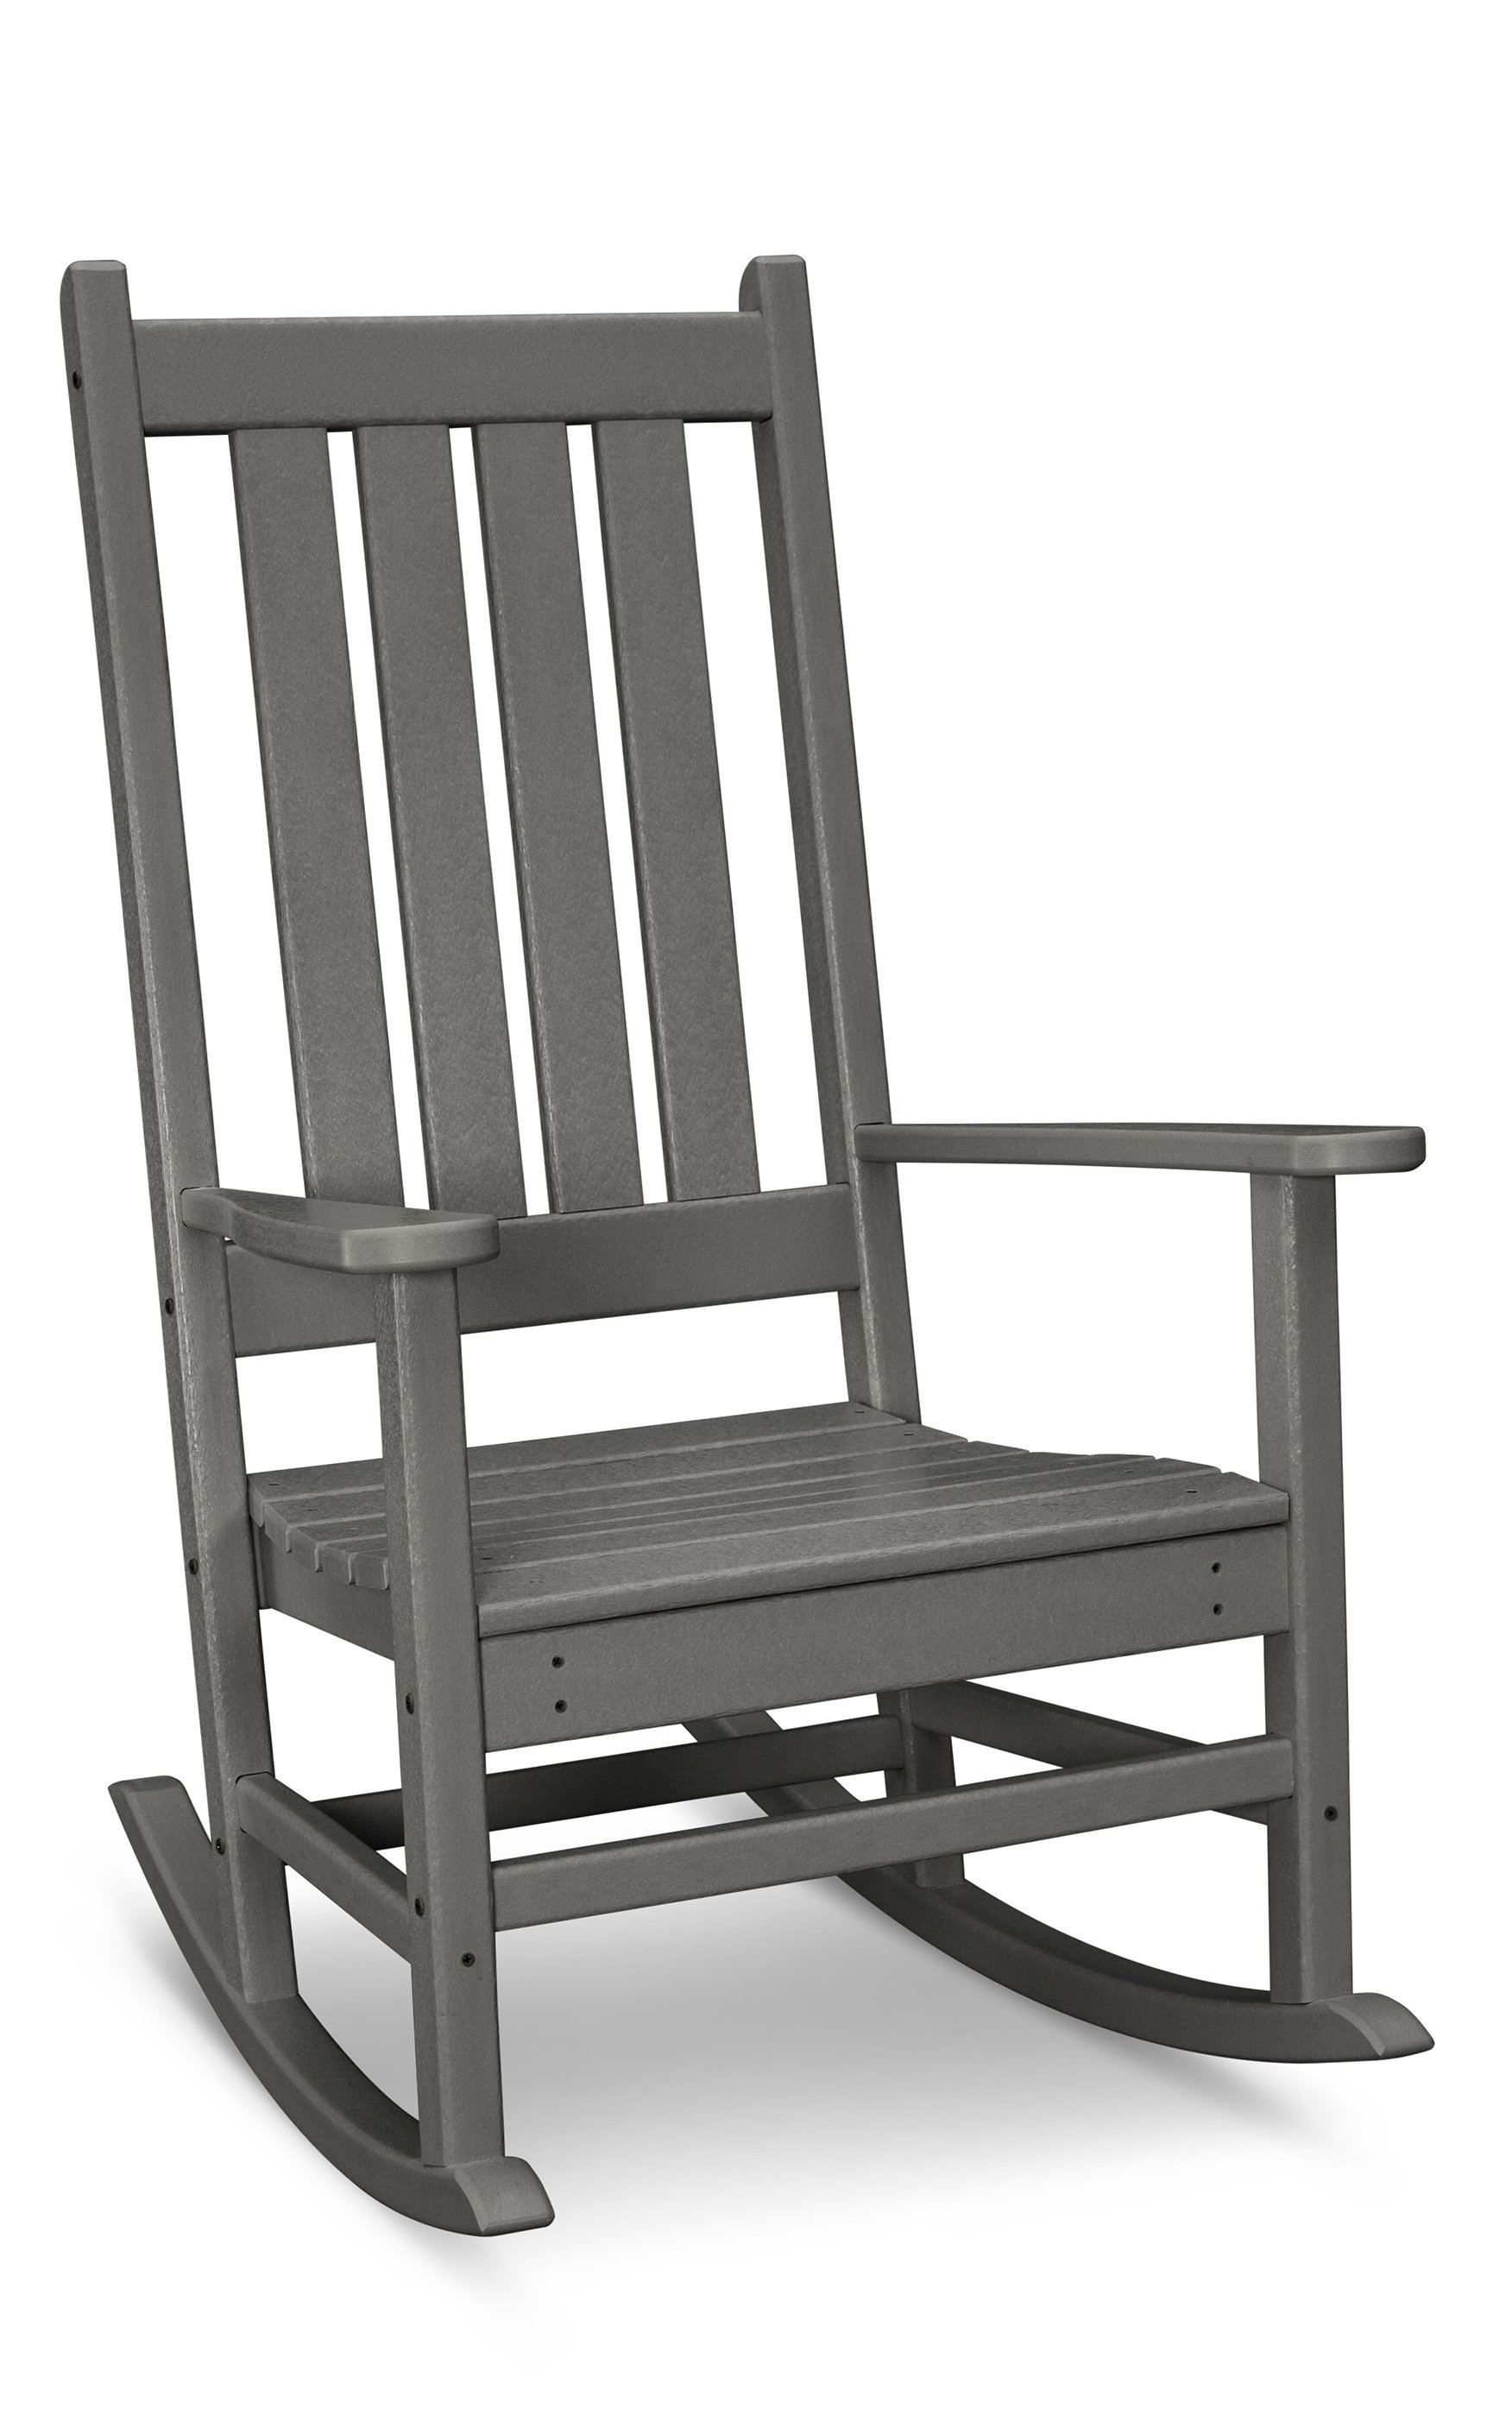 Polywood® Vineyard Porch Rocking Chair (View 14 of 15)